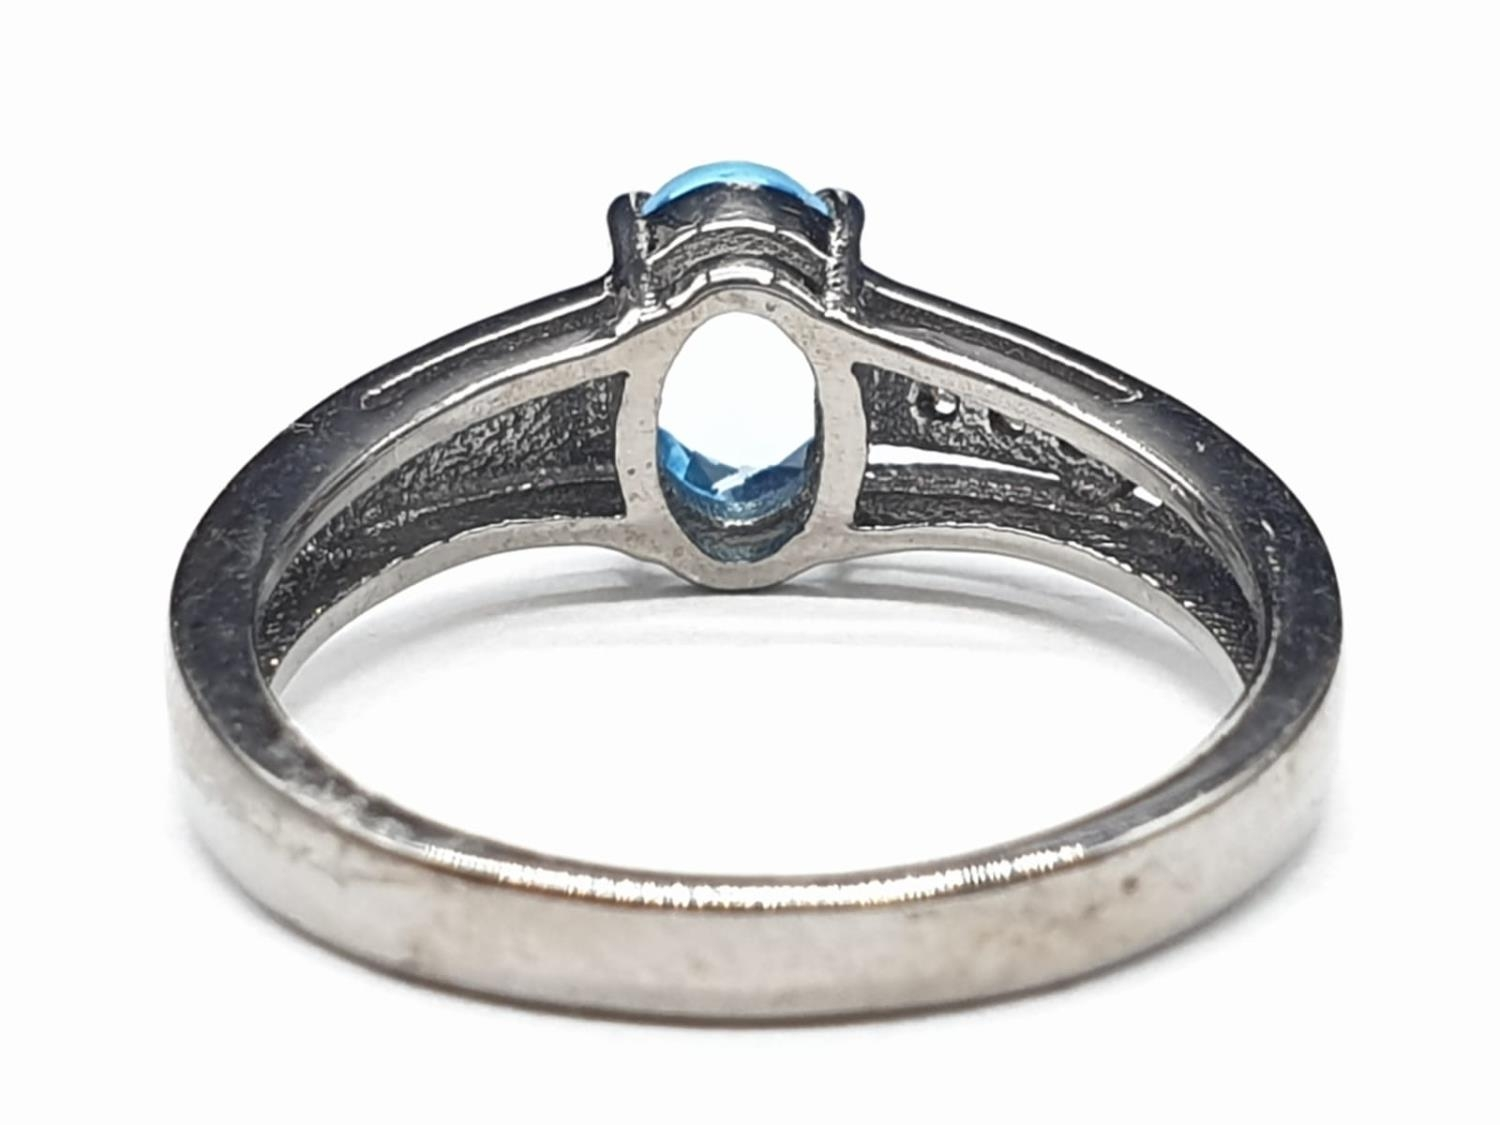 0.86 Ct Blue topaz stone inset a blackened silver ring. With 0.05 Ct rose cut diamonds, weight 2.35g - Image 4 of 7